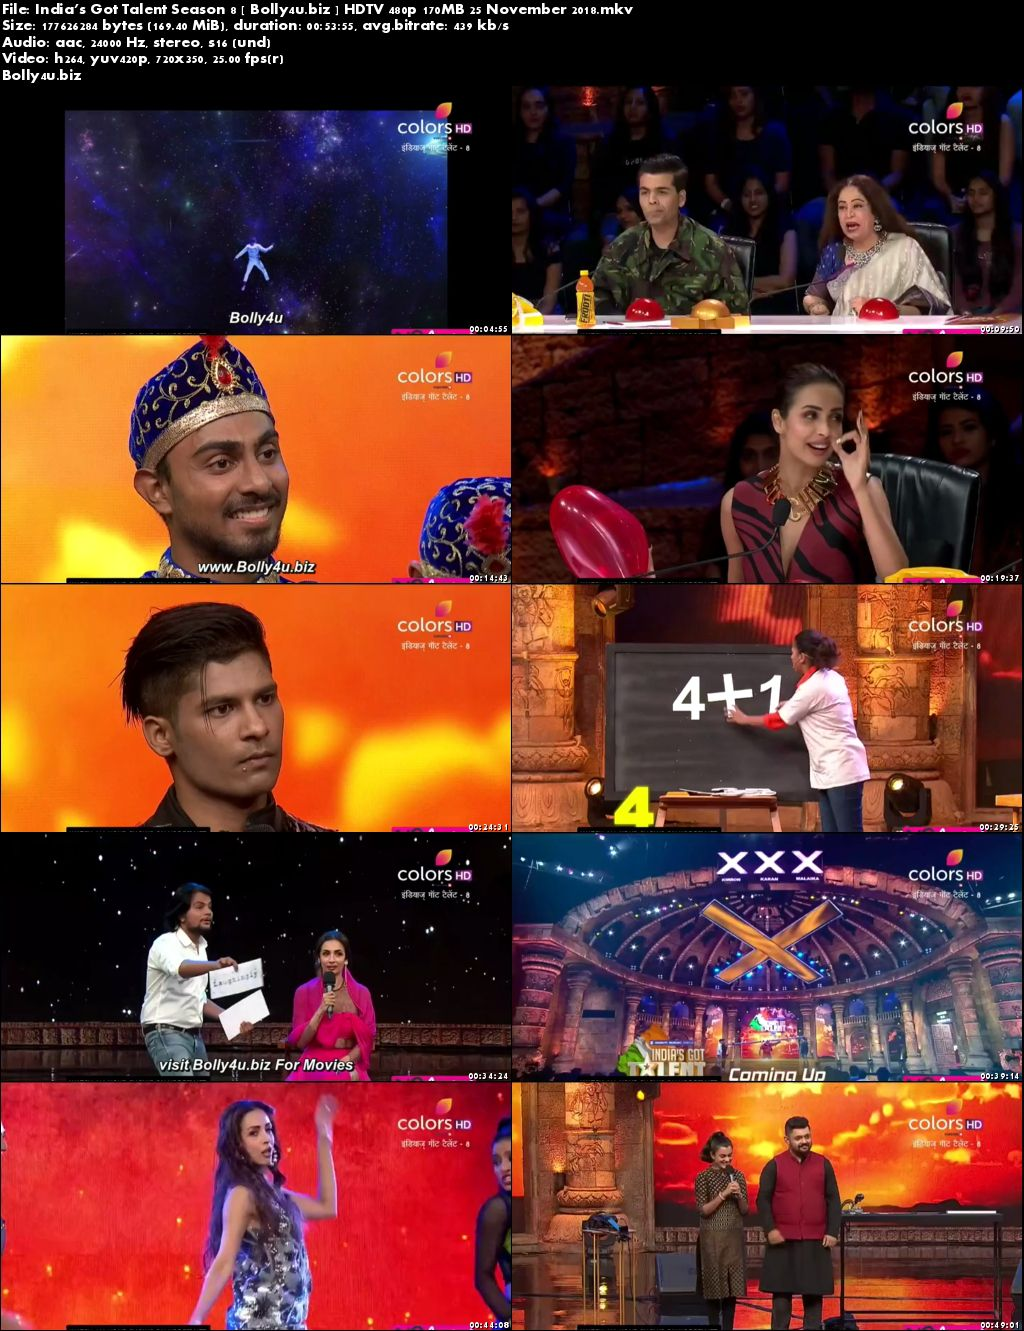 Indias Got Talent Season 8 HDTV 480p 170MB 25 November 2018 Download